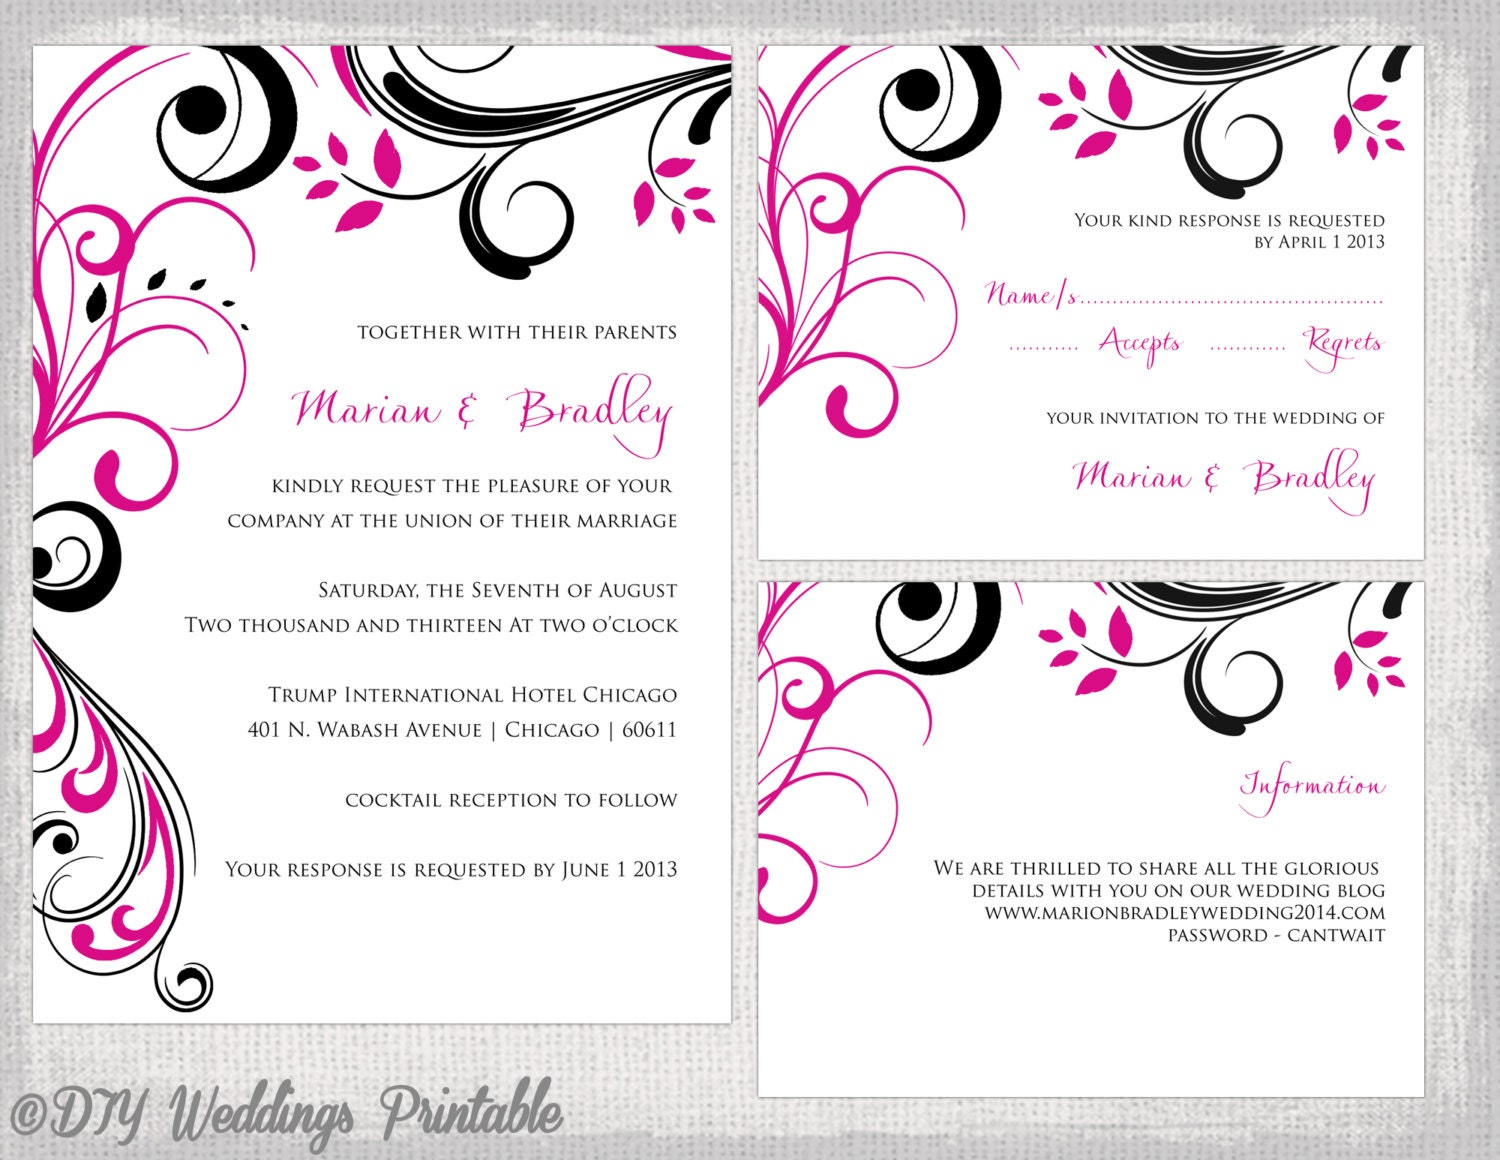 Red And Black Wedding Invitations Templates: Wedding Invitation Template Set Begonia Pink & Black